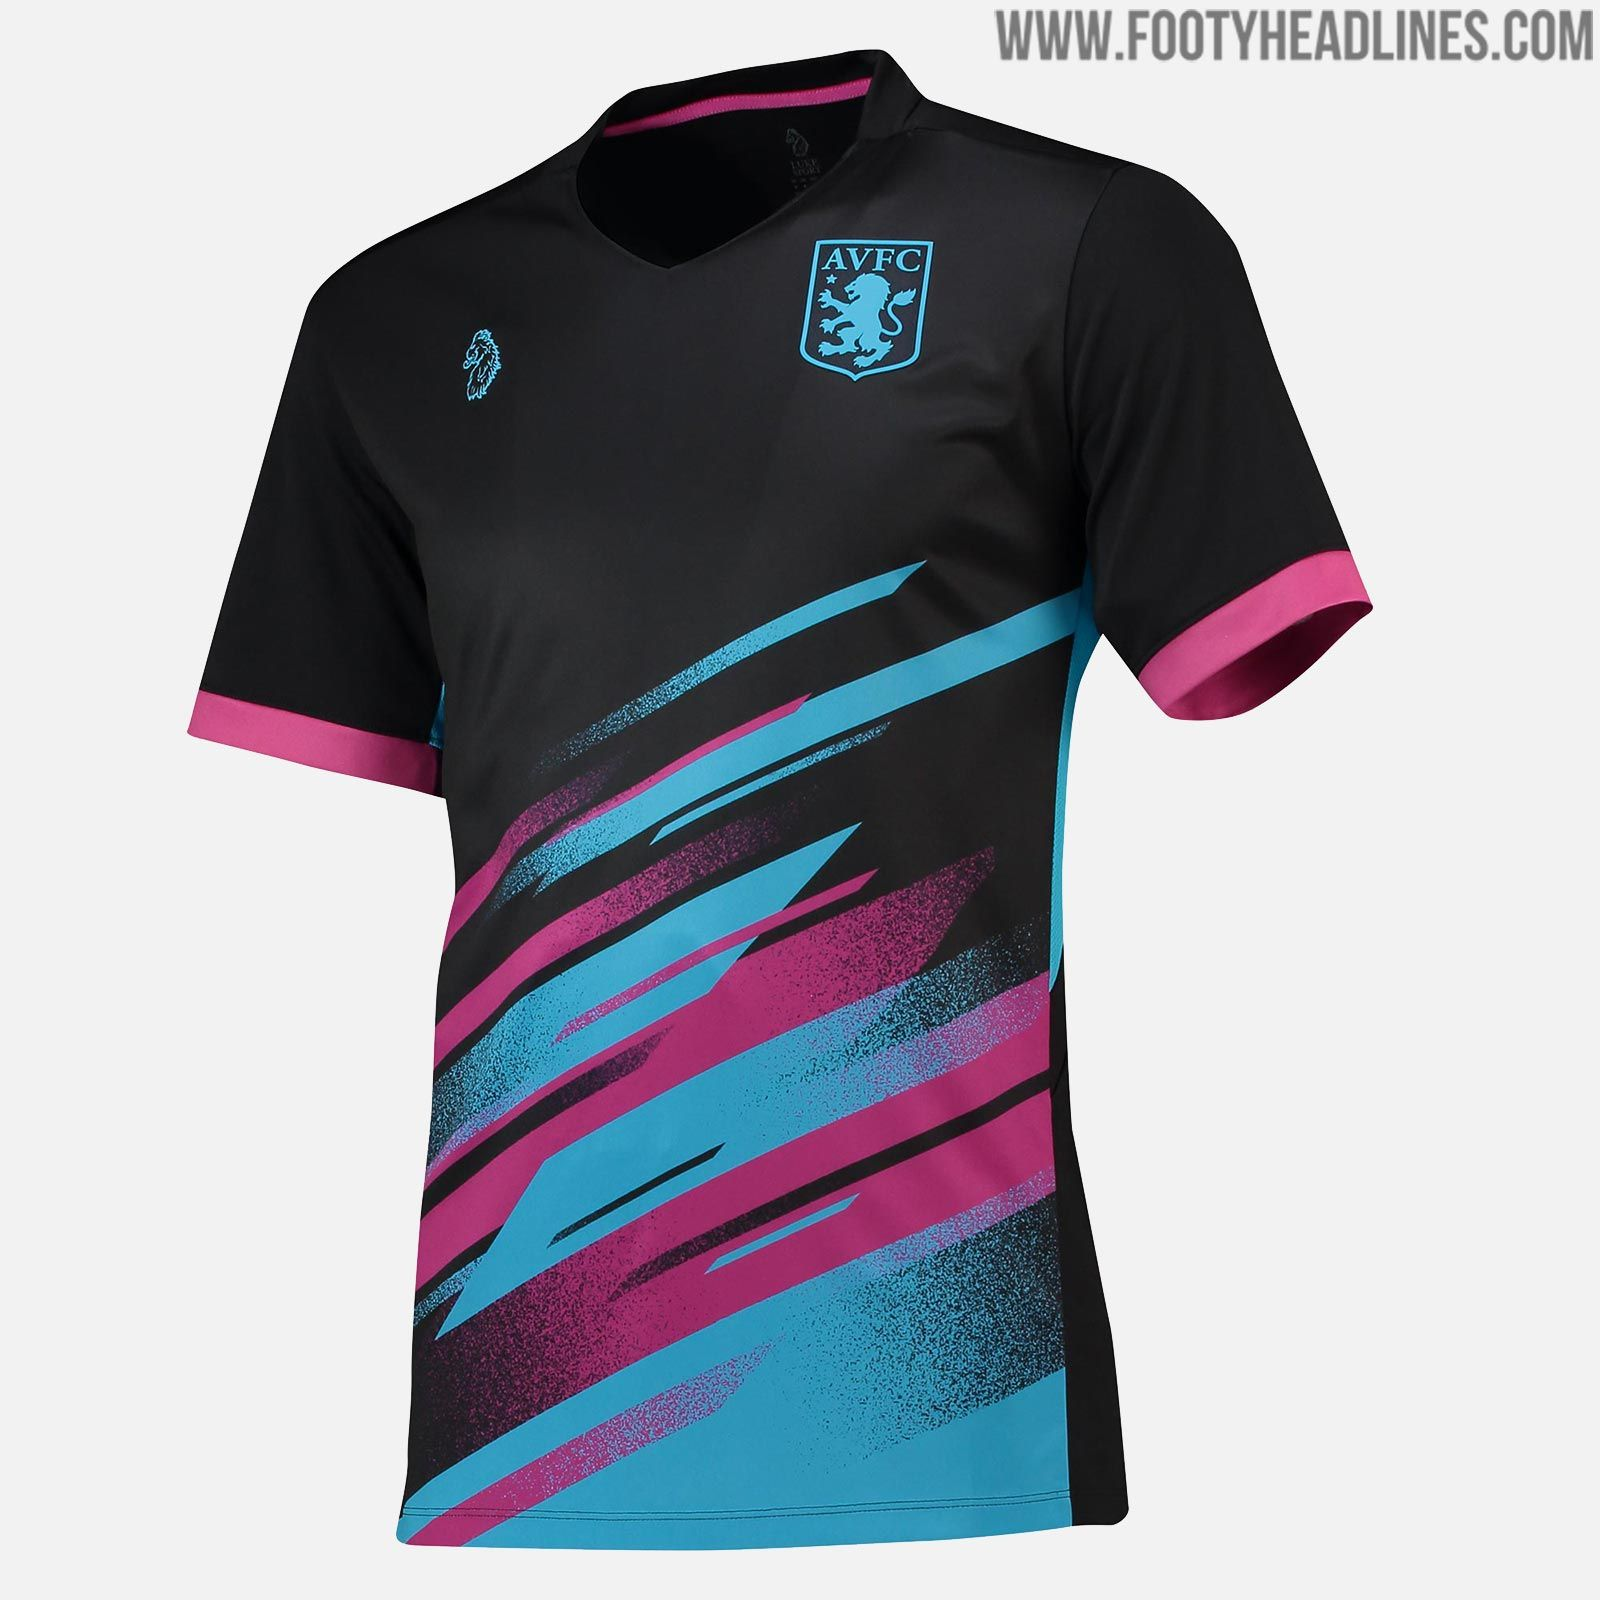 e4a7a2c14 Modern Aston Villa 18-19 Pre-Match   Training Jerseys Released - Footy  Headlines